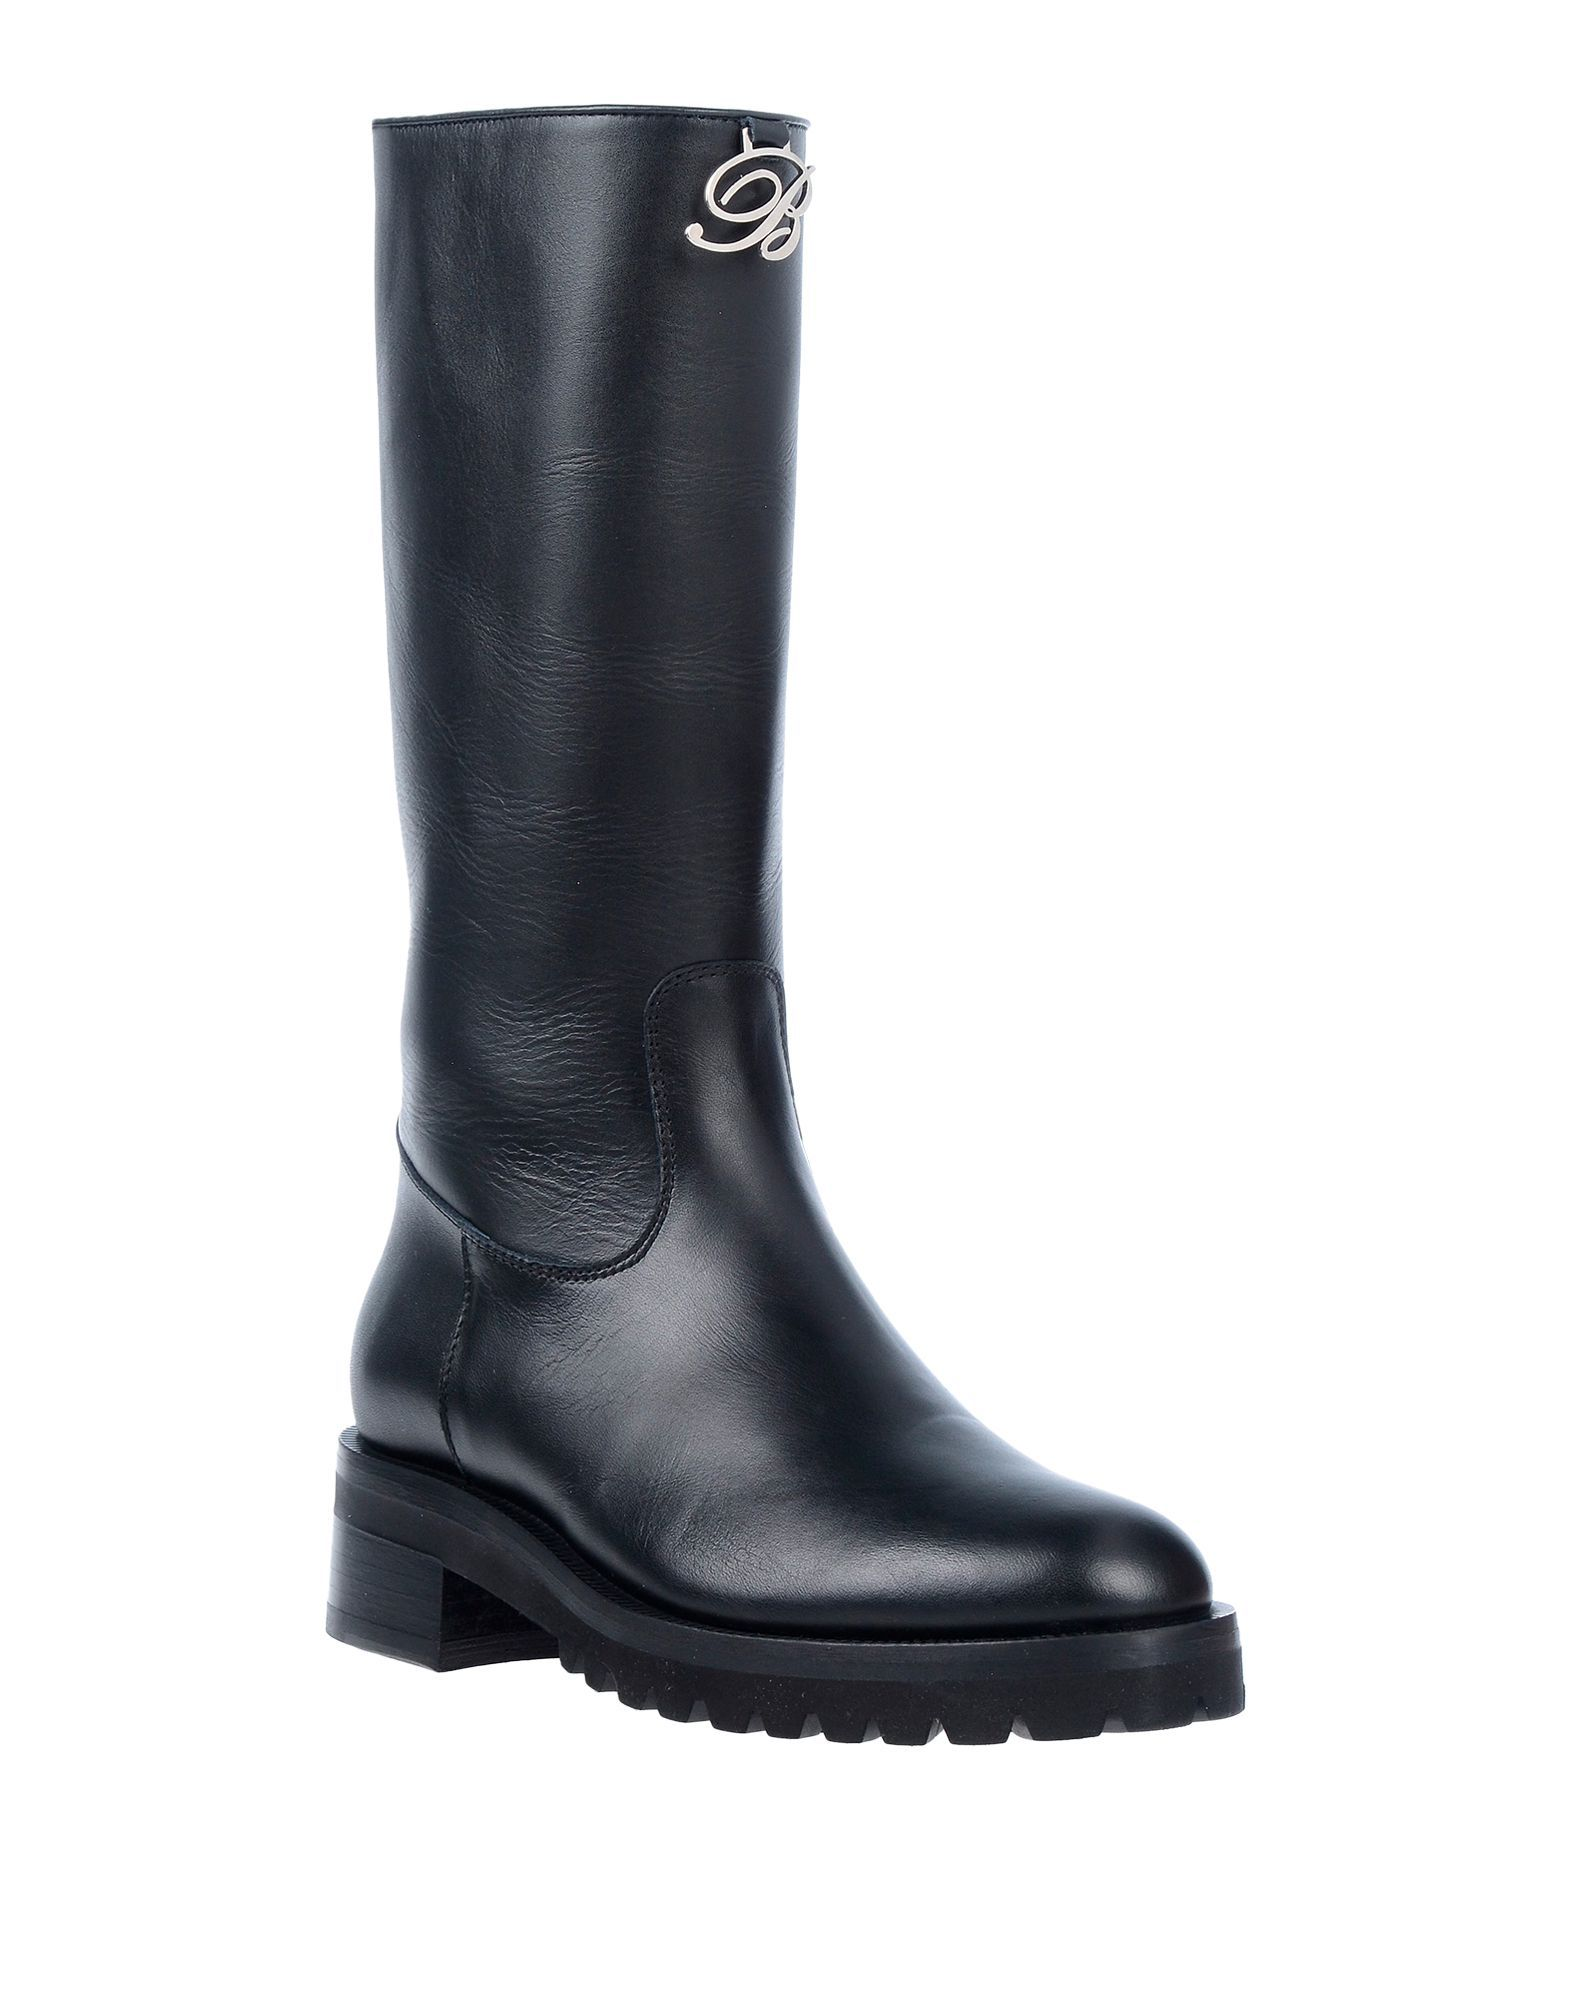 Blumarine Black Leather Boots